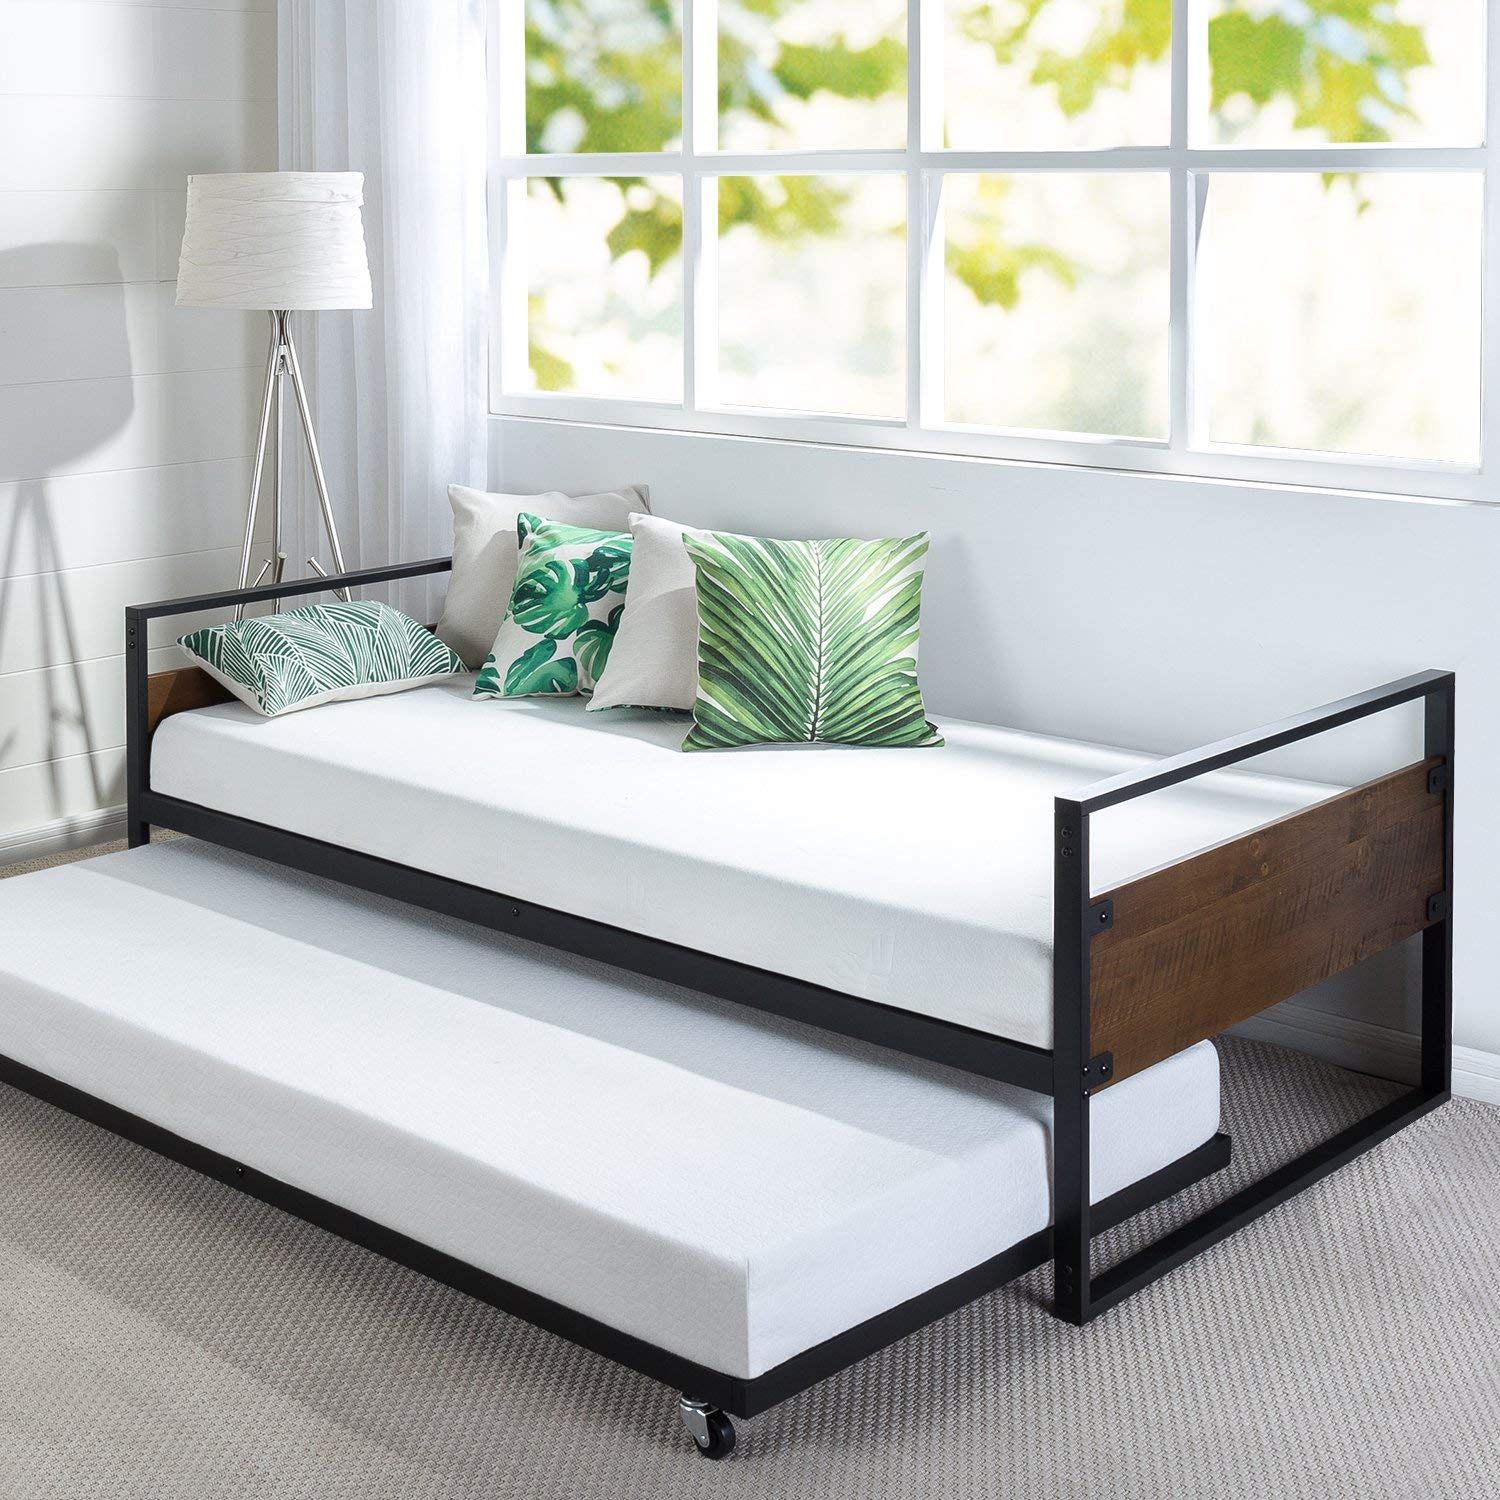 Top 10 Best Daybeds with Pop up Trundle in 2020 Reviews